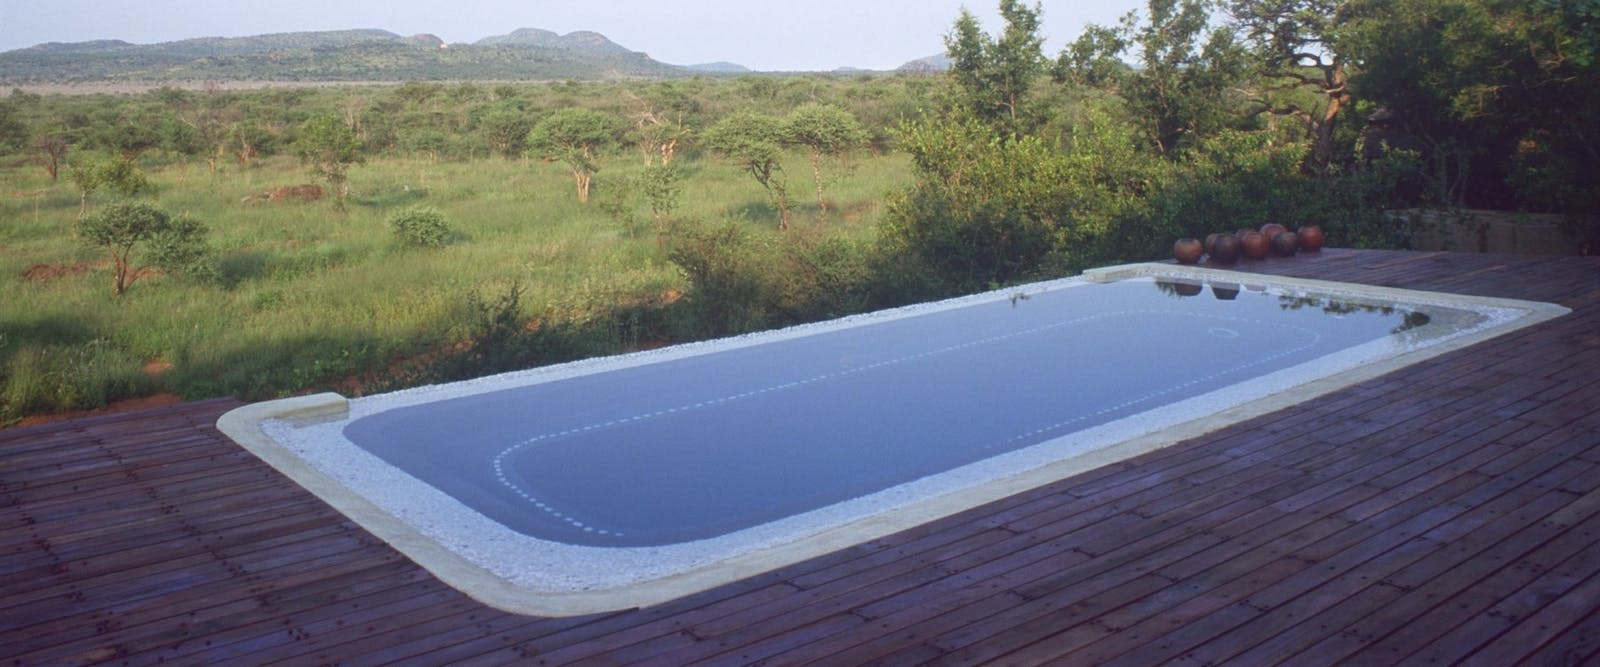 Pool at Madikwe Hills Madikwe Game Reserve